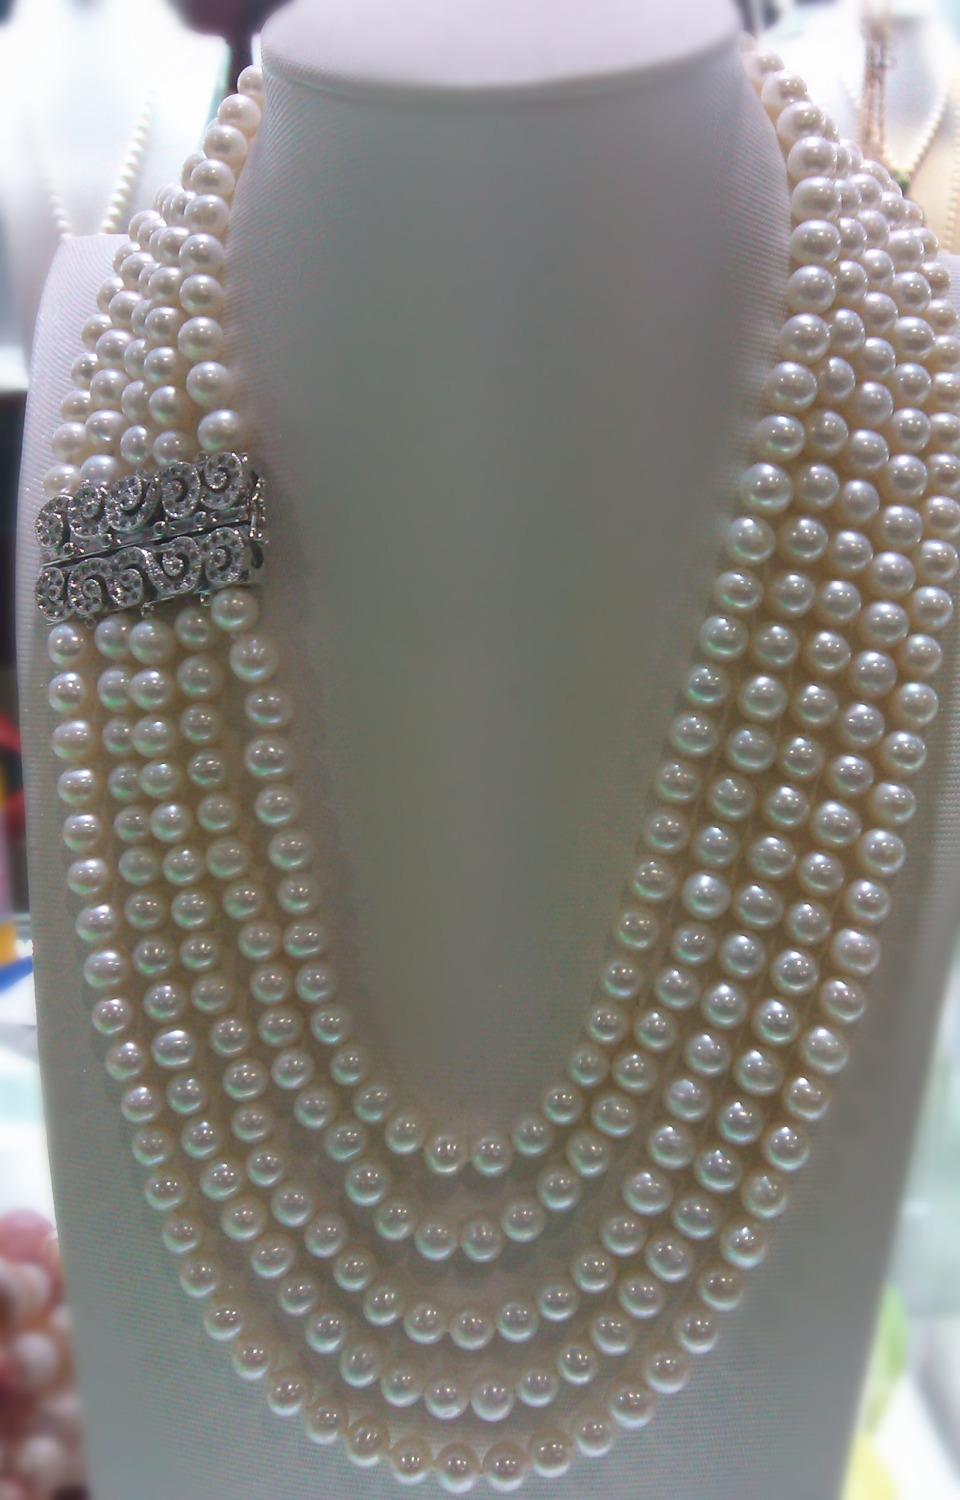 wholesale 4 rows natural AAA 7-8mm white freshwater pearl necklace 005wholesale 4 rows natural AAA 7-8mm white freshwater pearl necklace 005